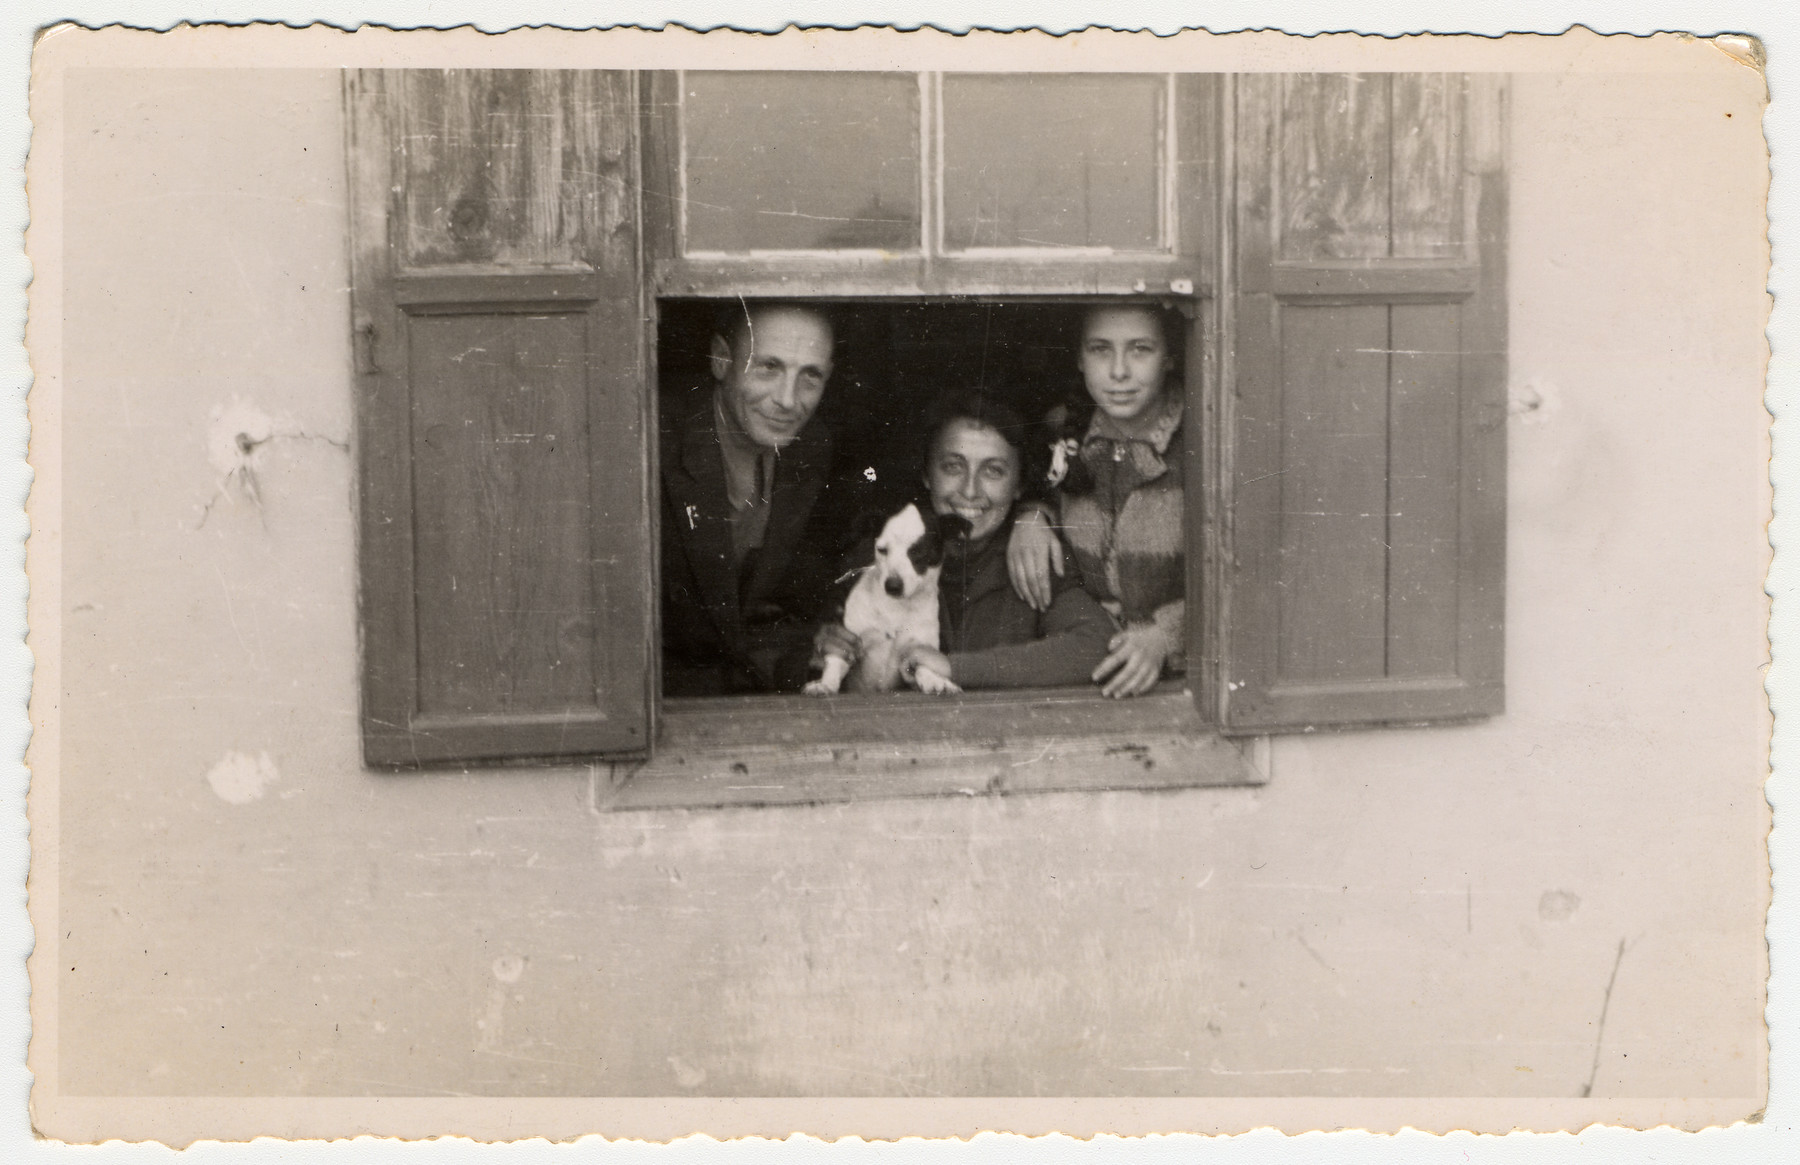 Jewish refugees look through the window of their one room home in Albania.  Pictured are Siegbert, Alice and Johanna Gerechter.